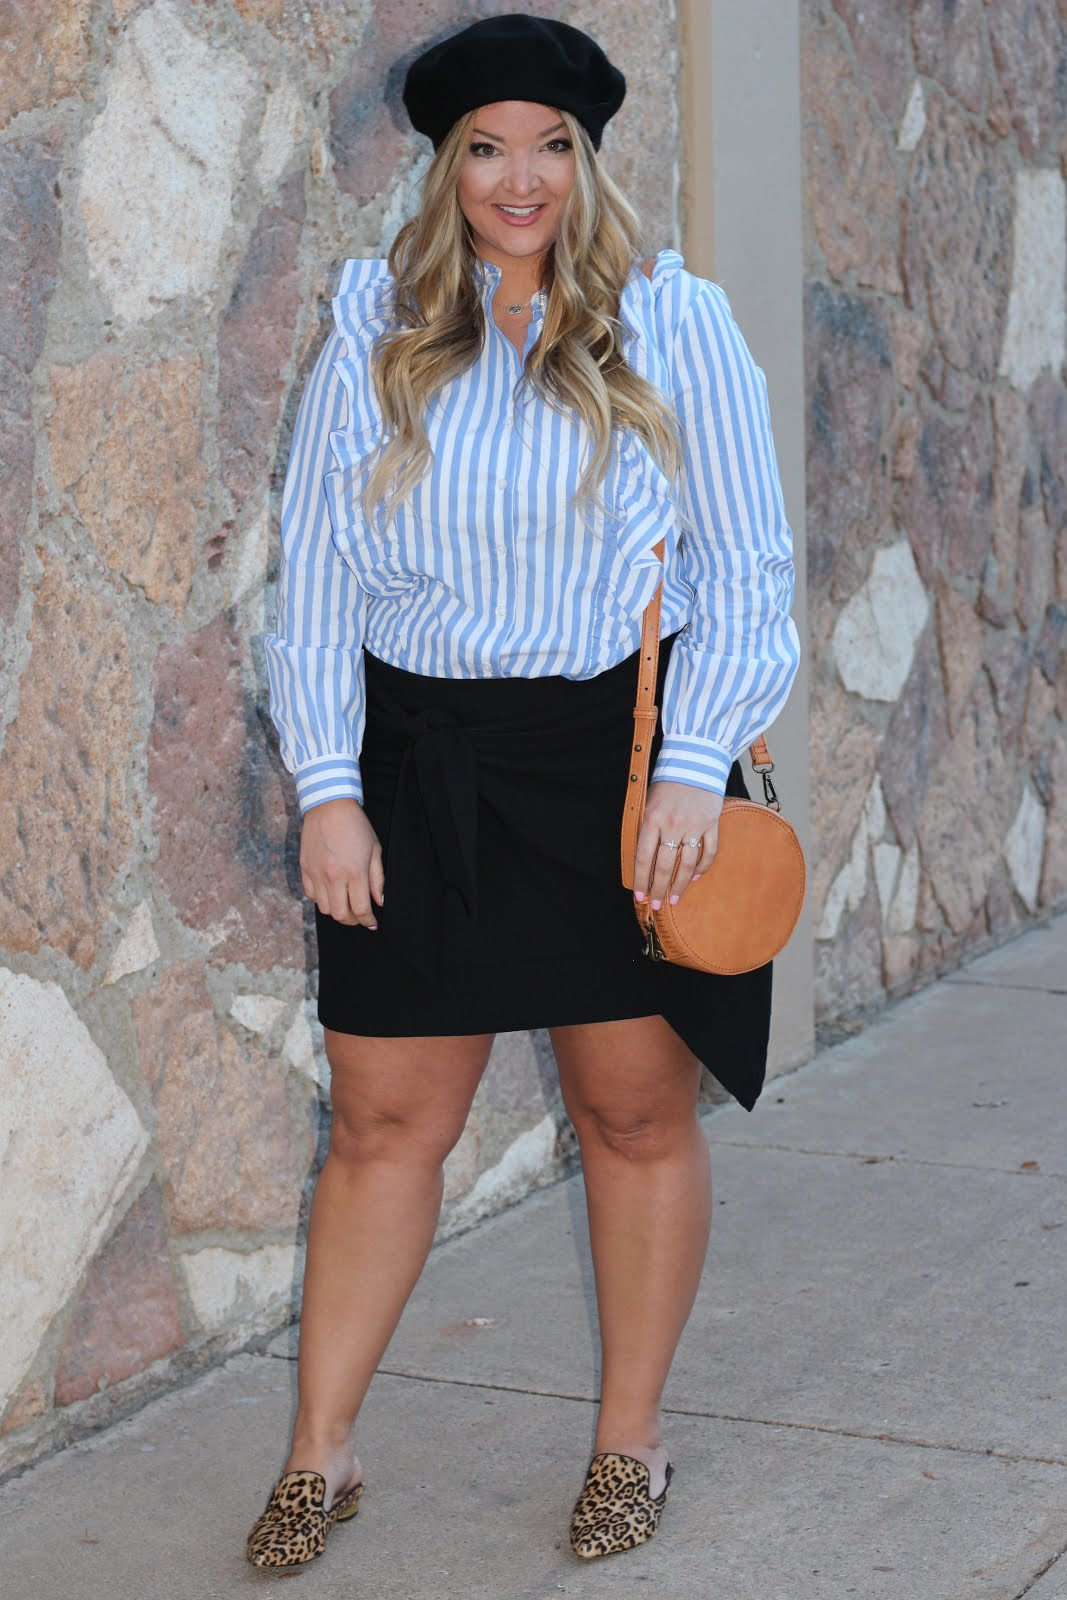 French Style: Blue striped Shirt and Black Skirt by popular Denver fashion blogger Delayne Denaye